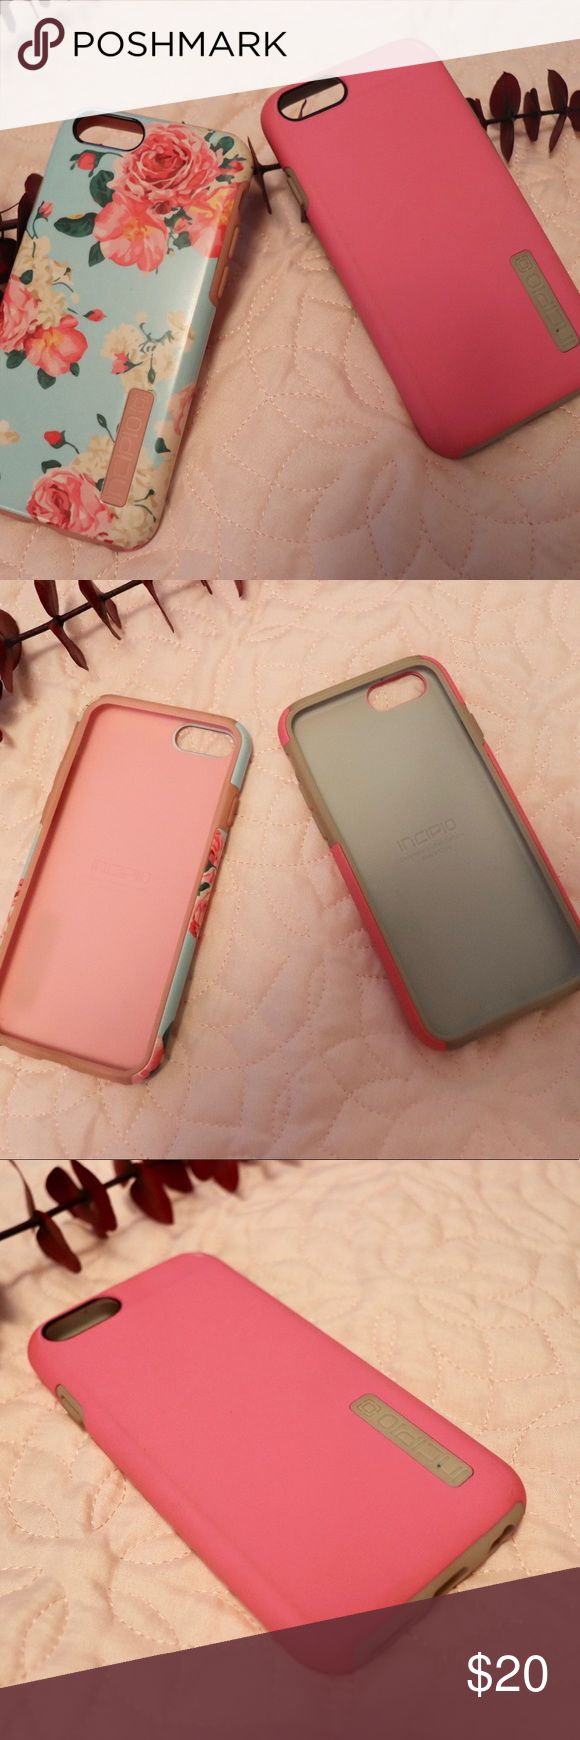 Incipio & Isaac Mizrahi iPhone 6 Cases Lot of 3 Incipio & Isaac Mizrahi Phone Cases For iPhone 6  Set of three iPhone 6 cases   - Condition: Pre-Owned - Brand: Incipio and Isaac Mizrahi - Each case is around $30.00 new  - Heavy duty, dual layer protection  - Comes from a smoke free home  If you have any other questions please contact me!  I'll ship next business day! 📦📬📮  ~Thank you for stopping by!💕 Incipio Accessories Phone Cases